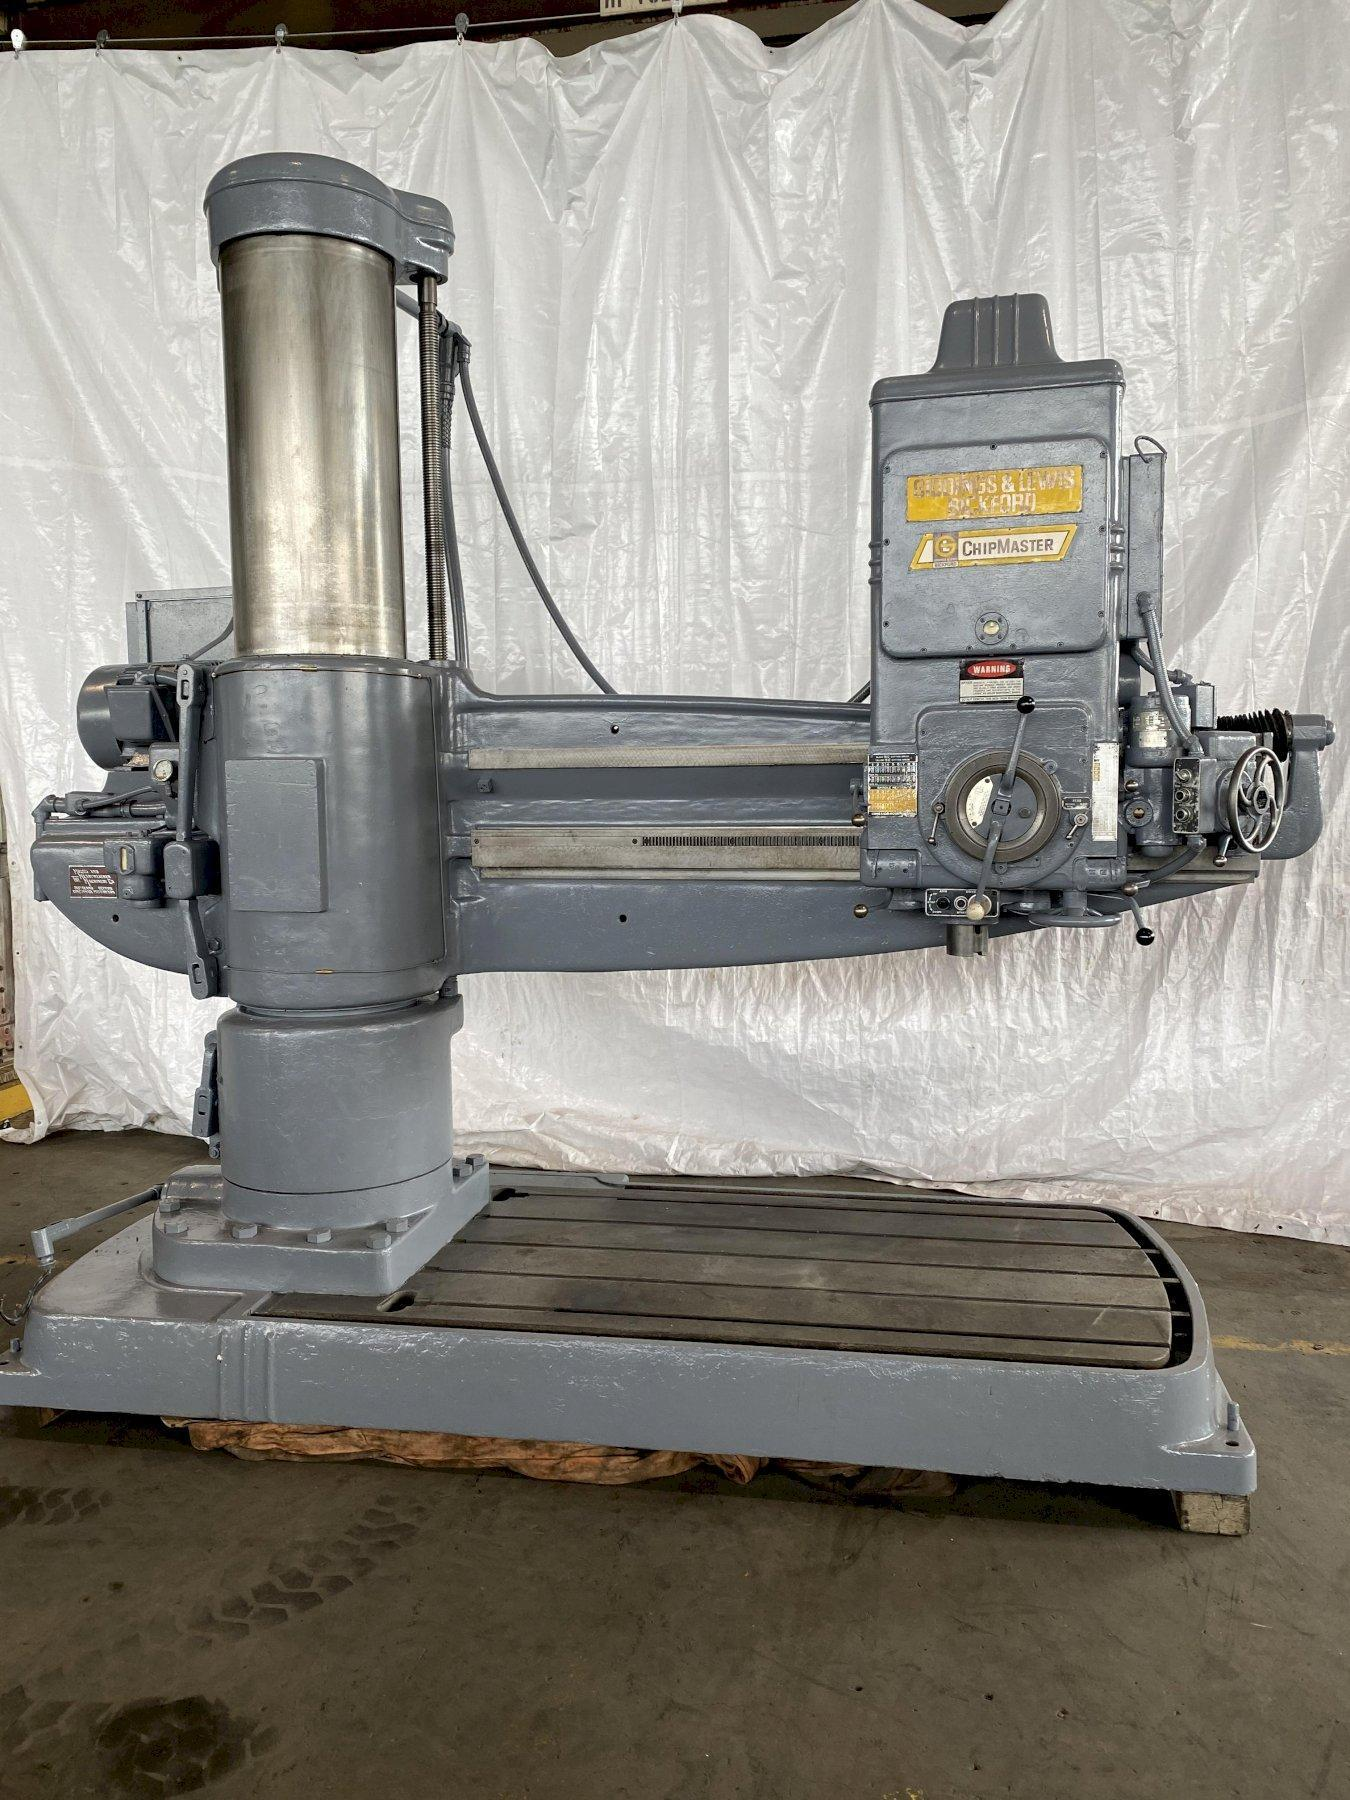 "6' x 19"" GIDDINGS & LEWIS BICKFORD CHIPMASTER RADIAL ARM DRILL. STOCK # 0405820"